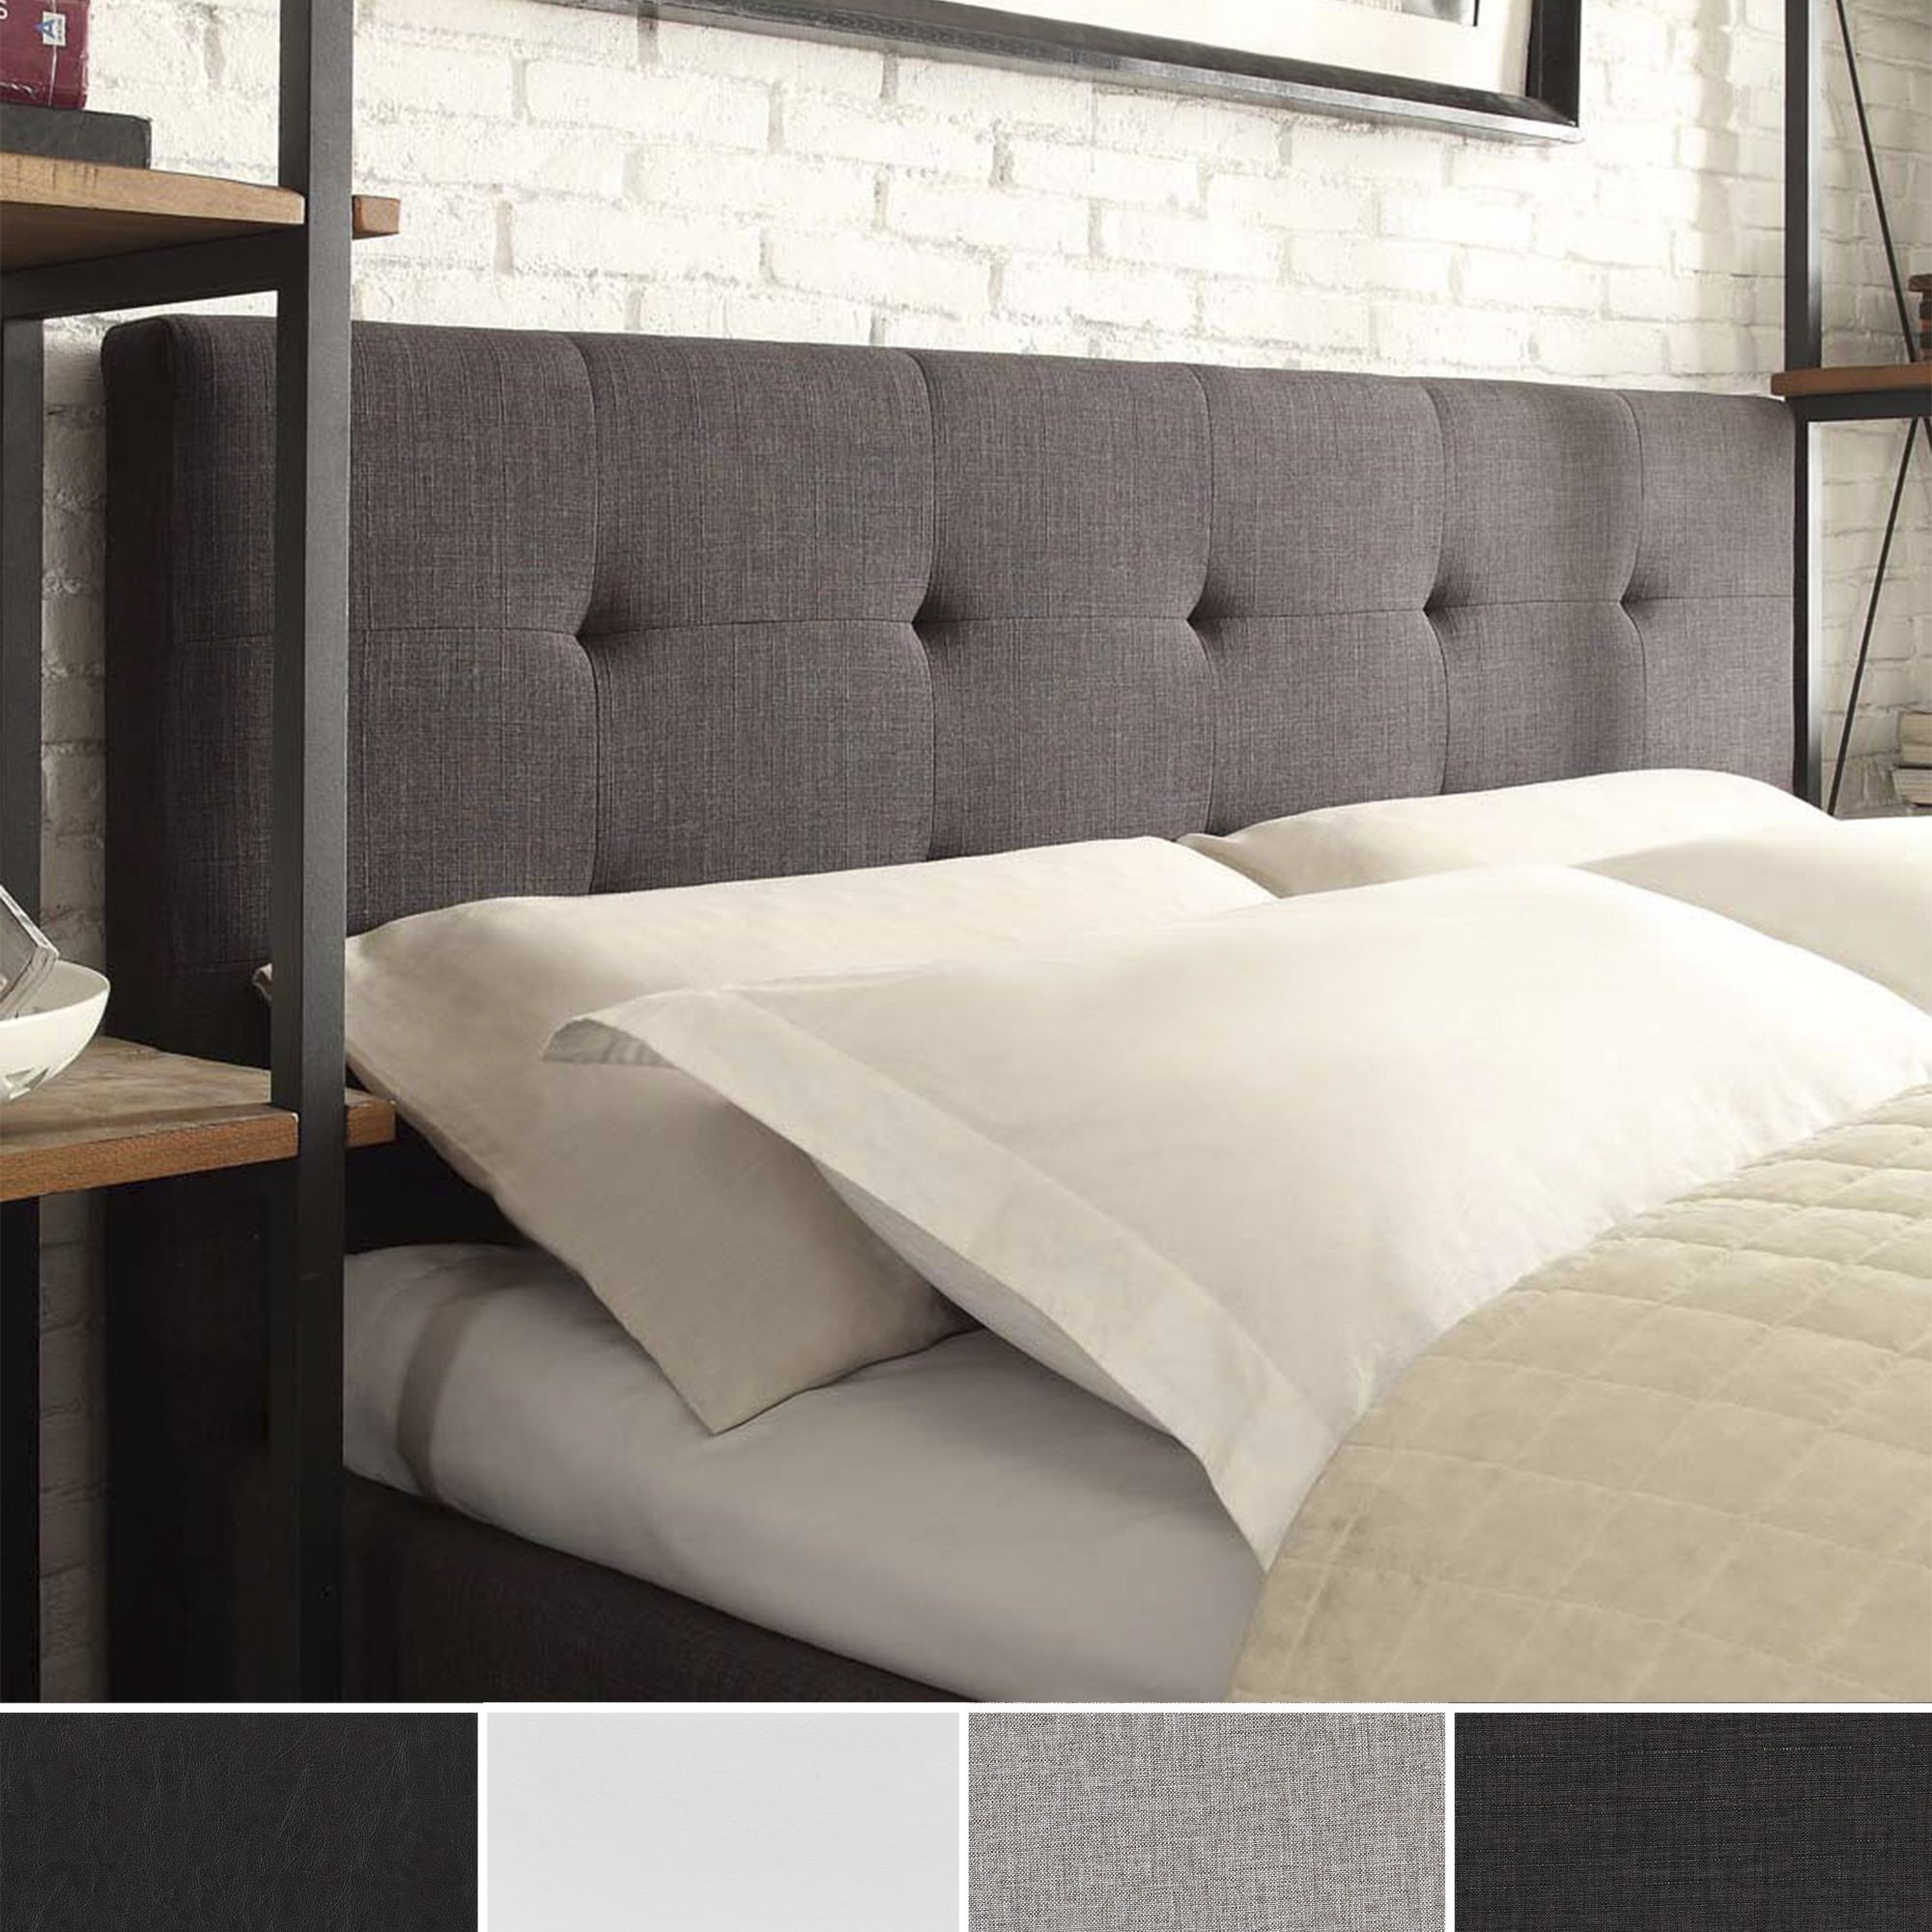 The tufted button low profile headboard design emphasizes the low sleek and chic of this elegant collection transform the look of your master or guest